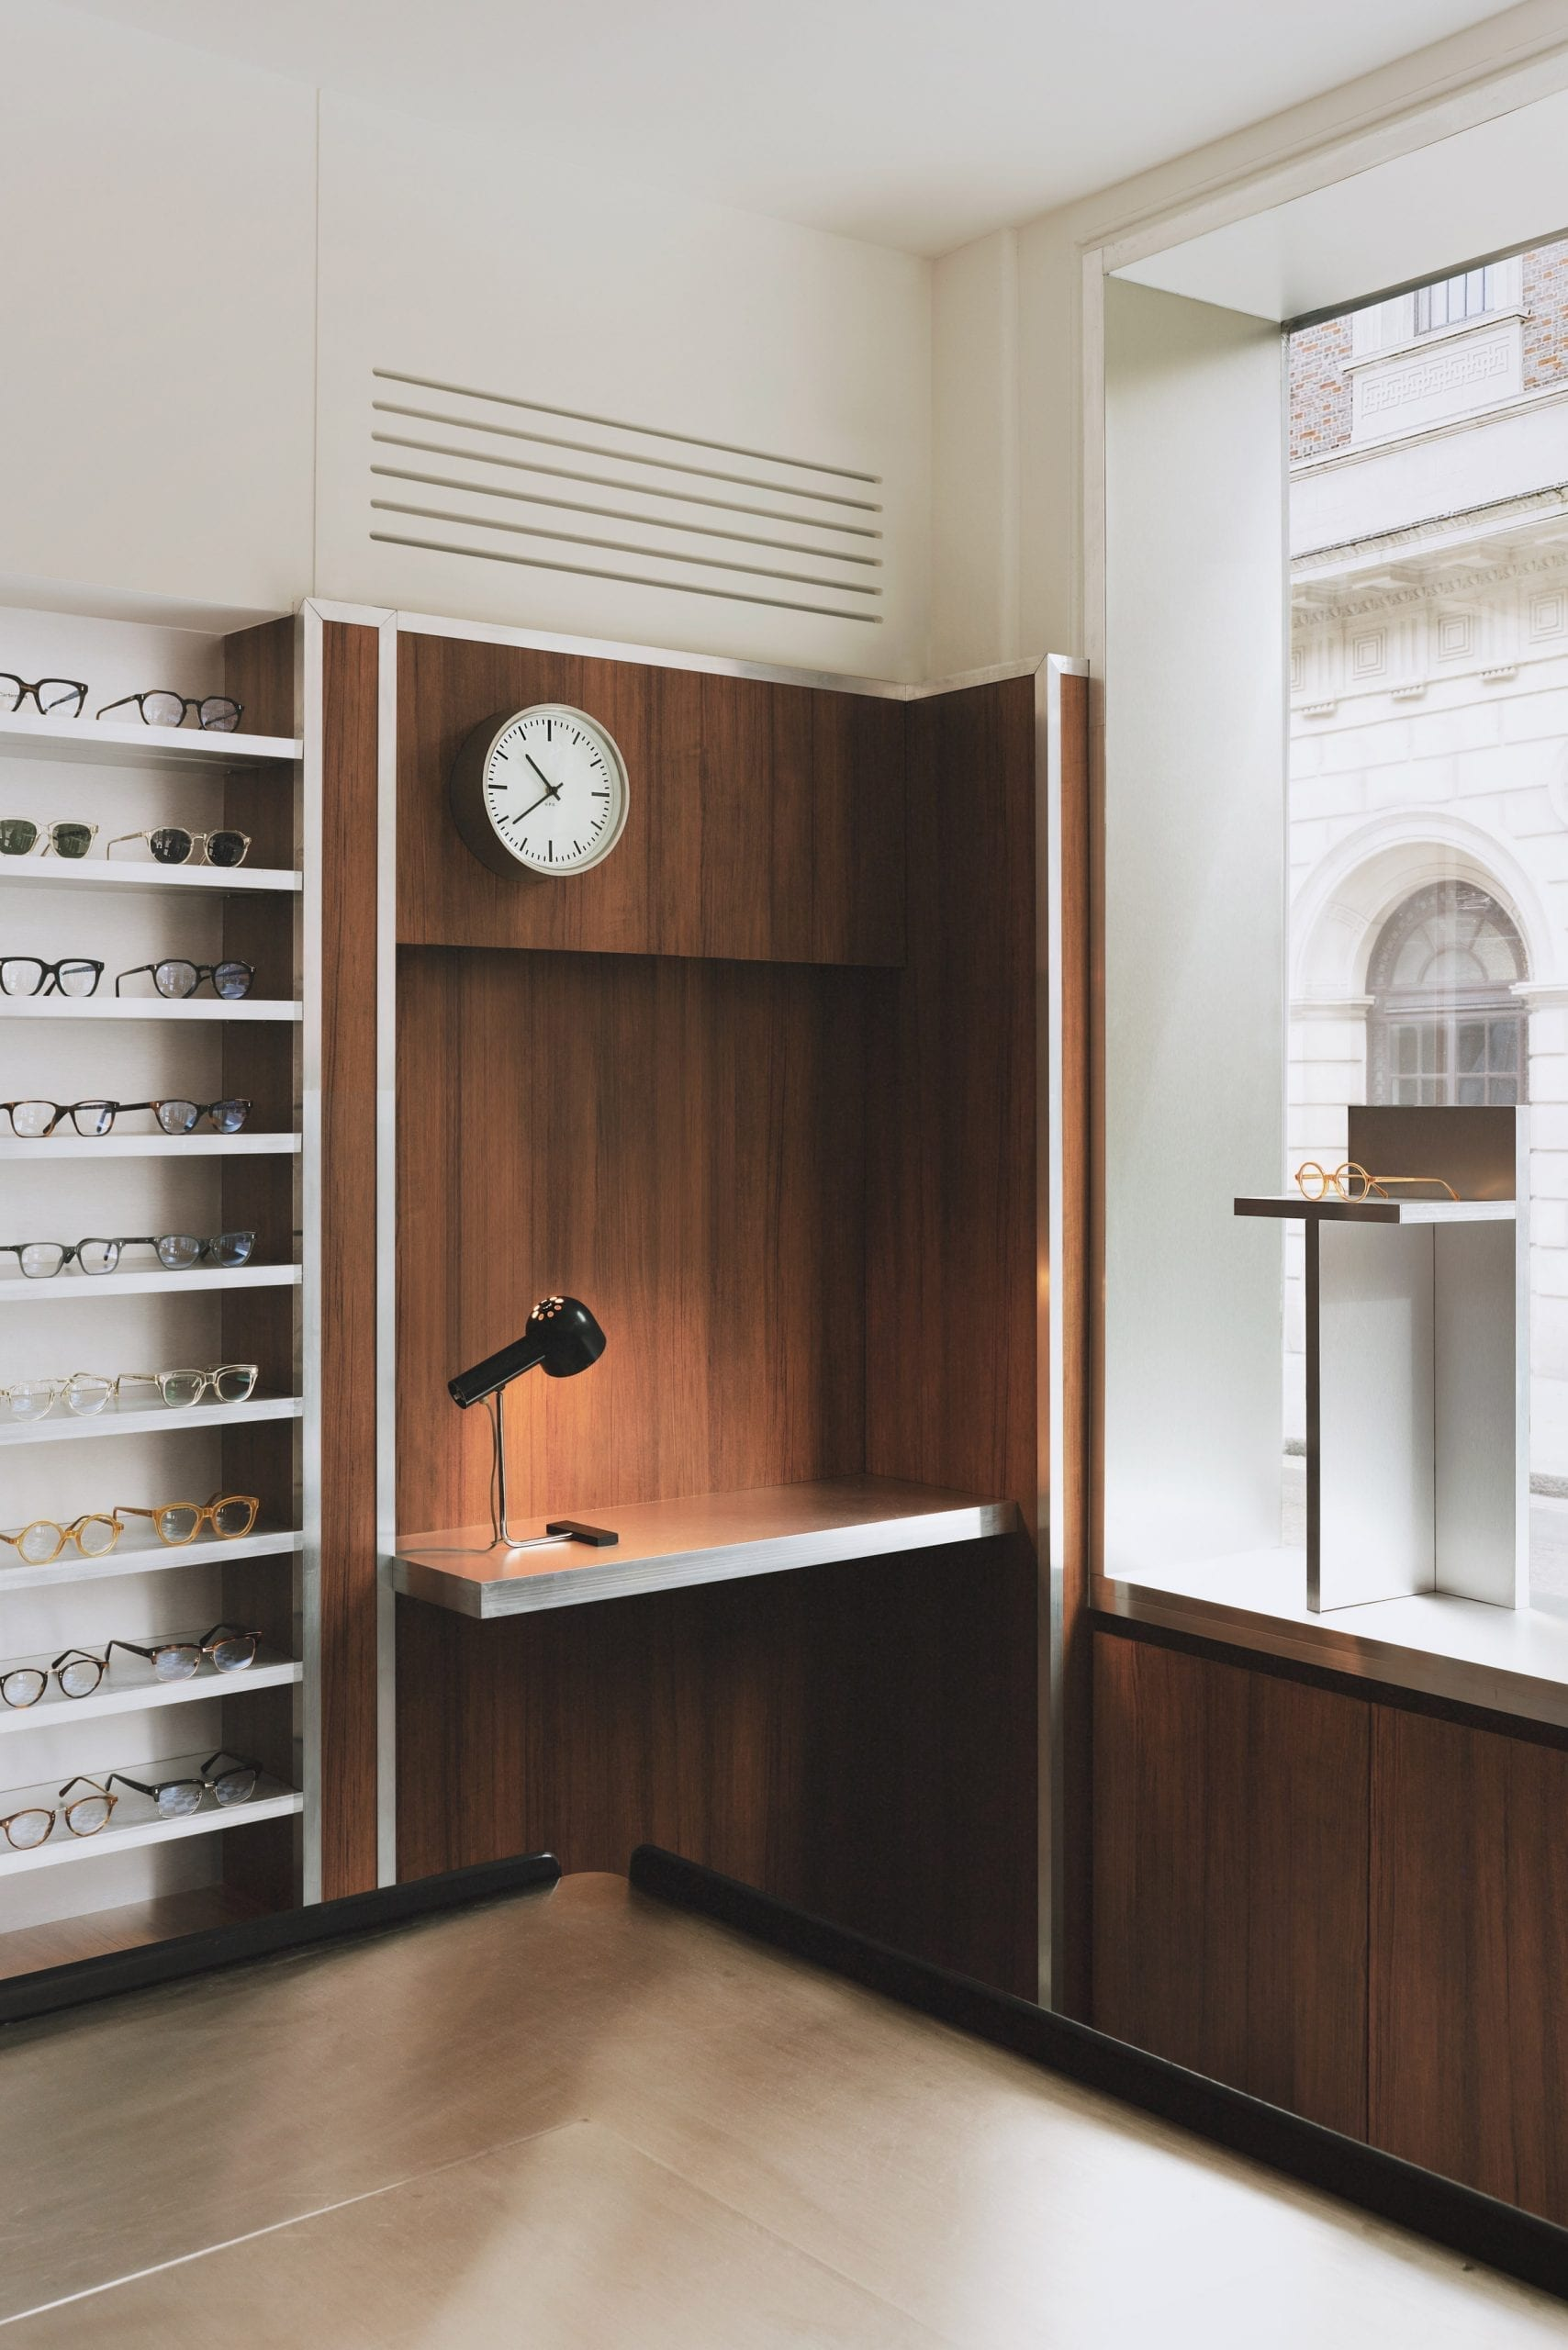 Desk nook with clock and glasses display in eyewear store by Child Studio